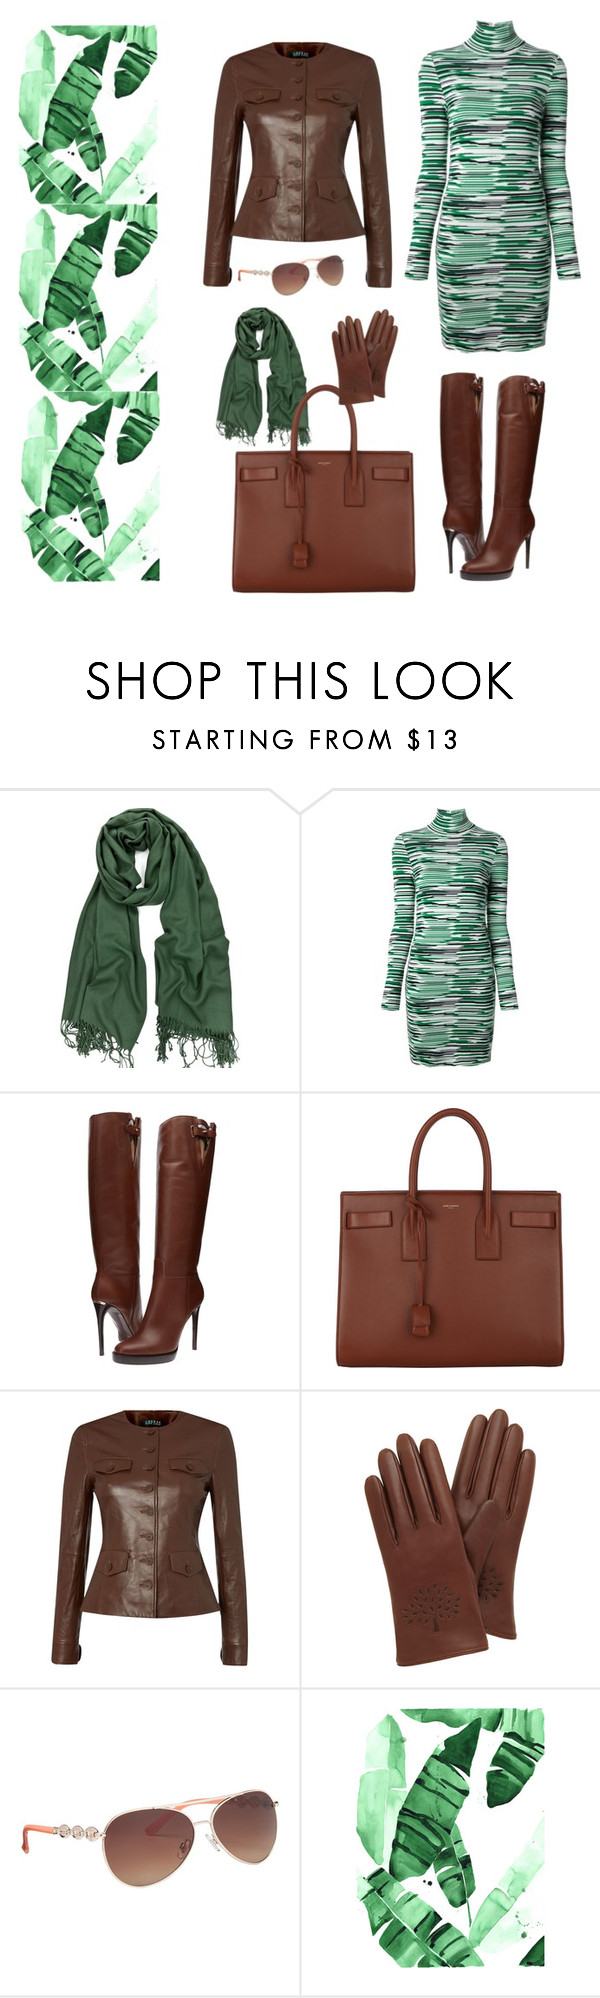 """Stella"" by b-nieves ❤ liked on Polyvore featuring STELLA McCARTNEY, Burberry, Yves Saint Laurent, Lauren Ralph Lauren, Mulberry and maurices"